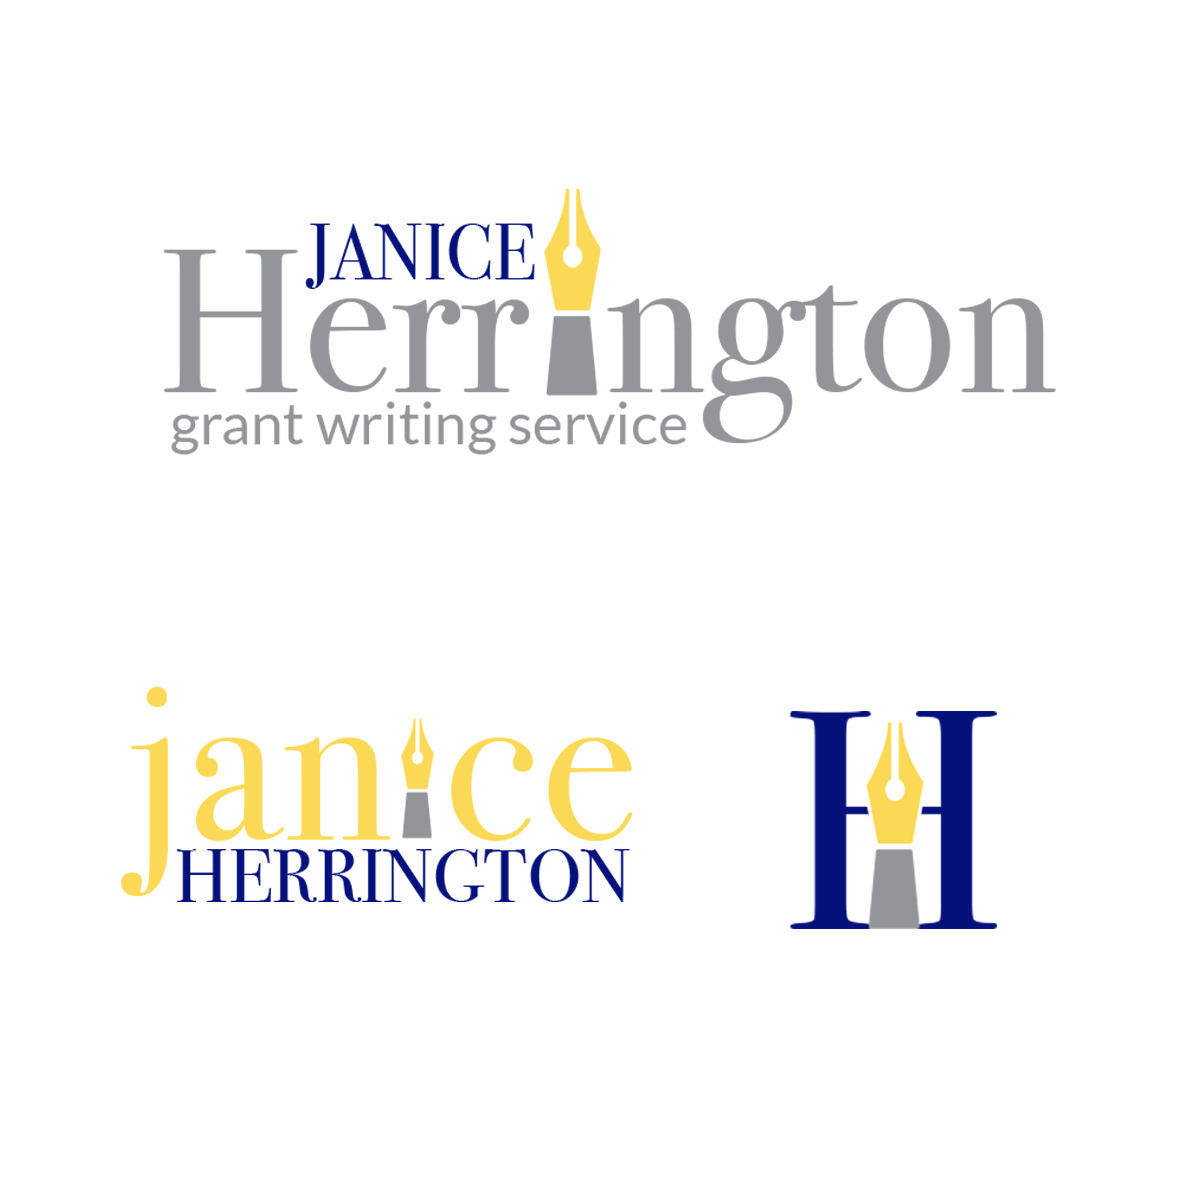 Logo Designs - 3 logo variations are included for additional options in your business.